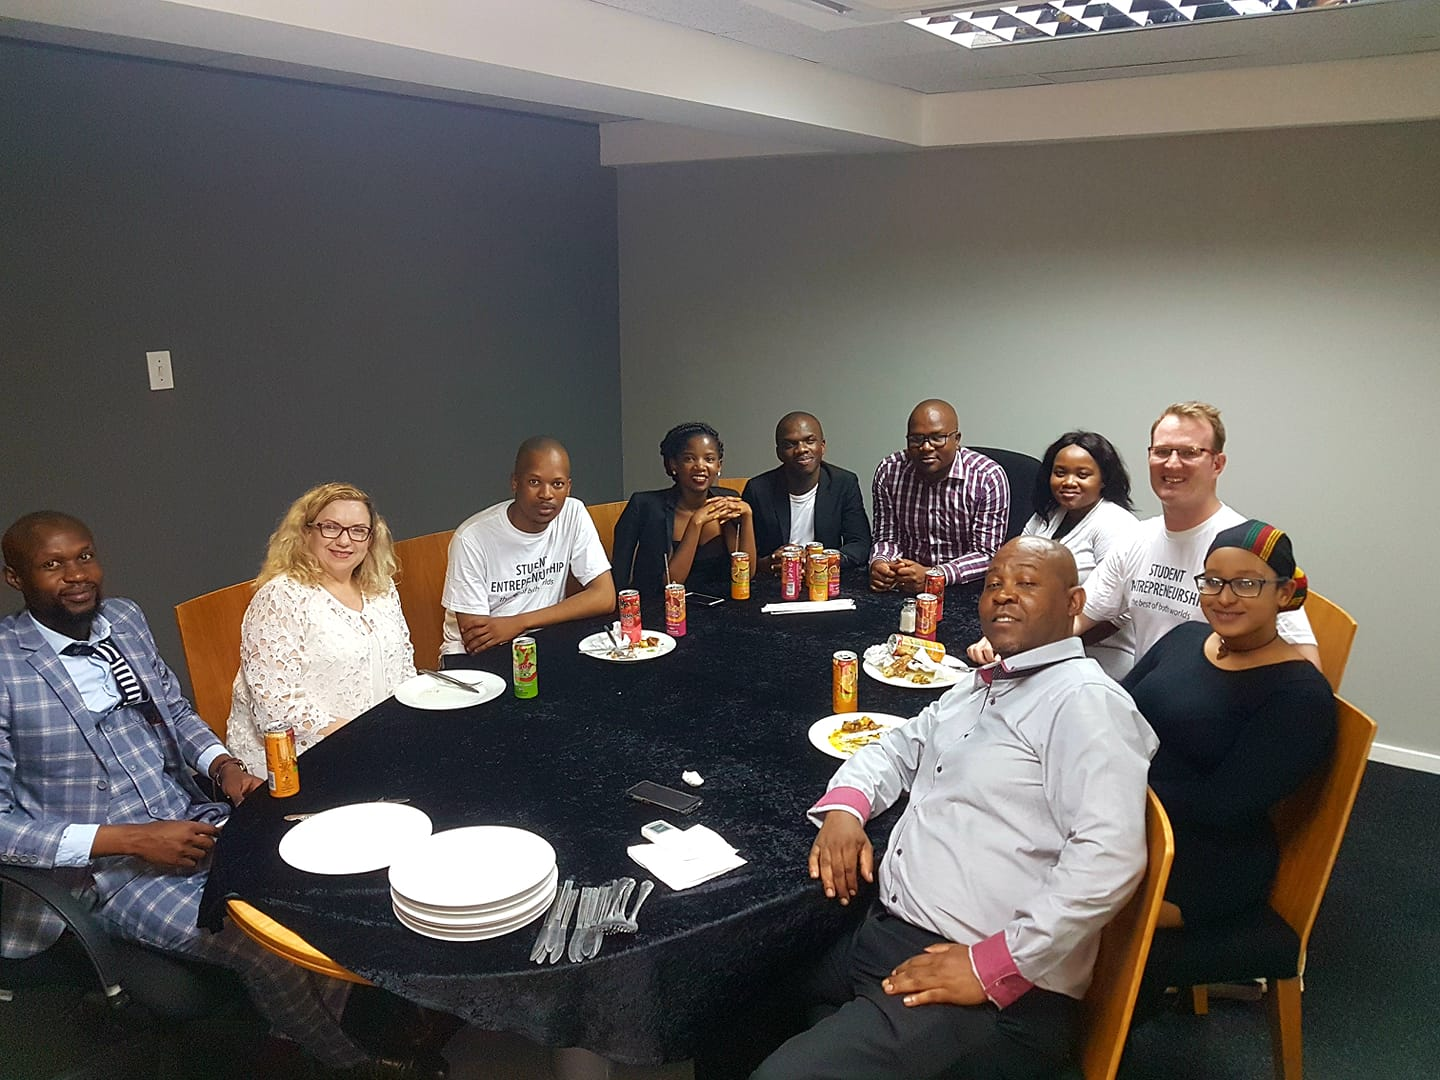 What a team at University of Fort Hare! Today is the start of an entrepreneurship movement at this university, under the leadership of Institutional Advancement and amazing student leaders. Watch this space! #SEW2018